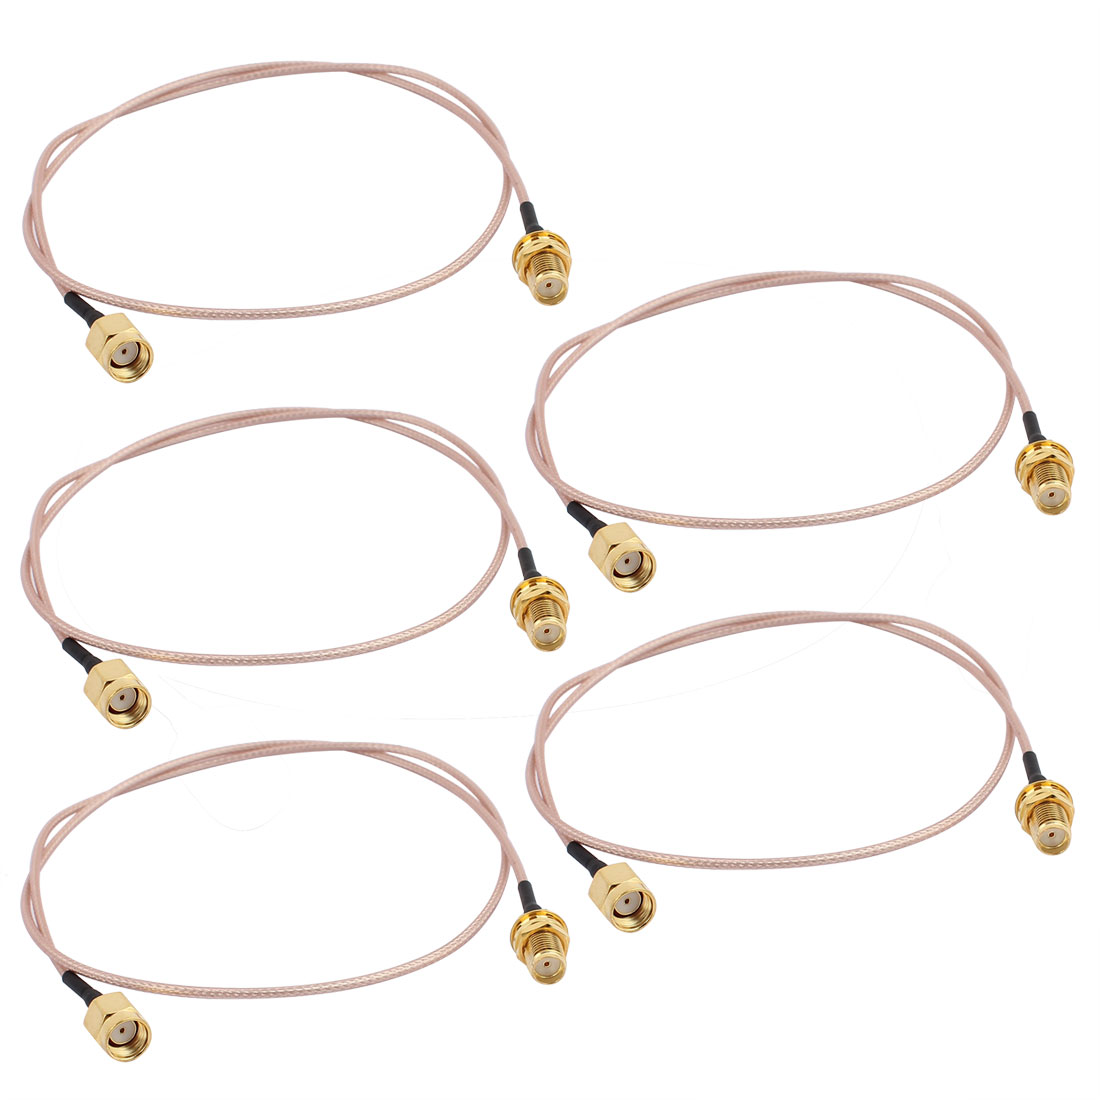 5 Pcs Gold RP-SMA Male to SMA Female Adapter Connector RG178 Coaxial Cable 50cm